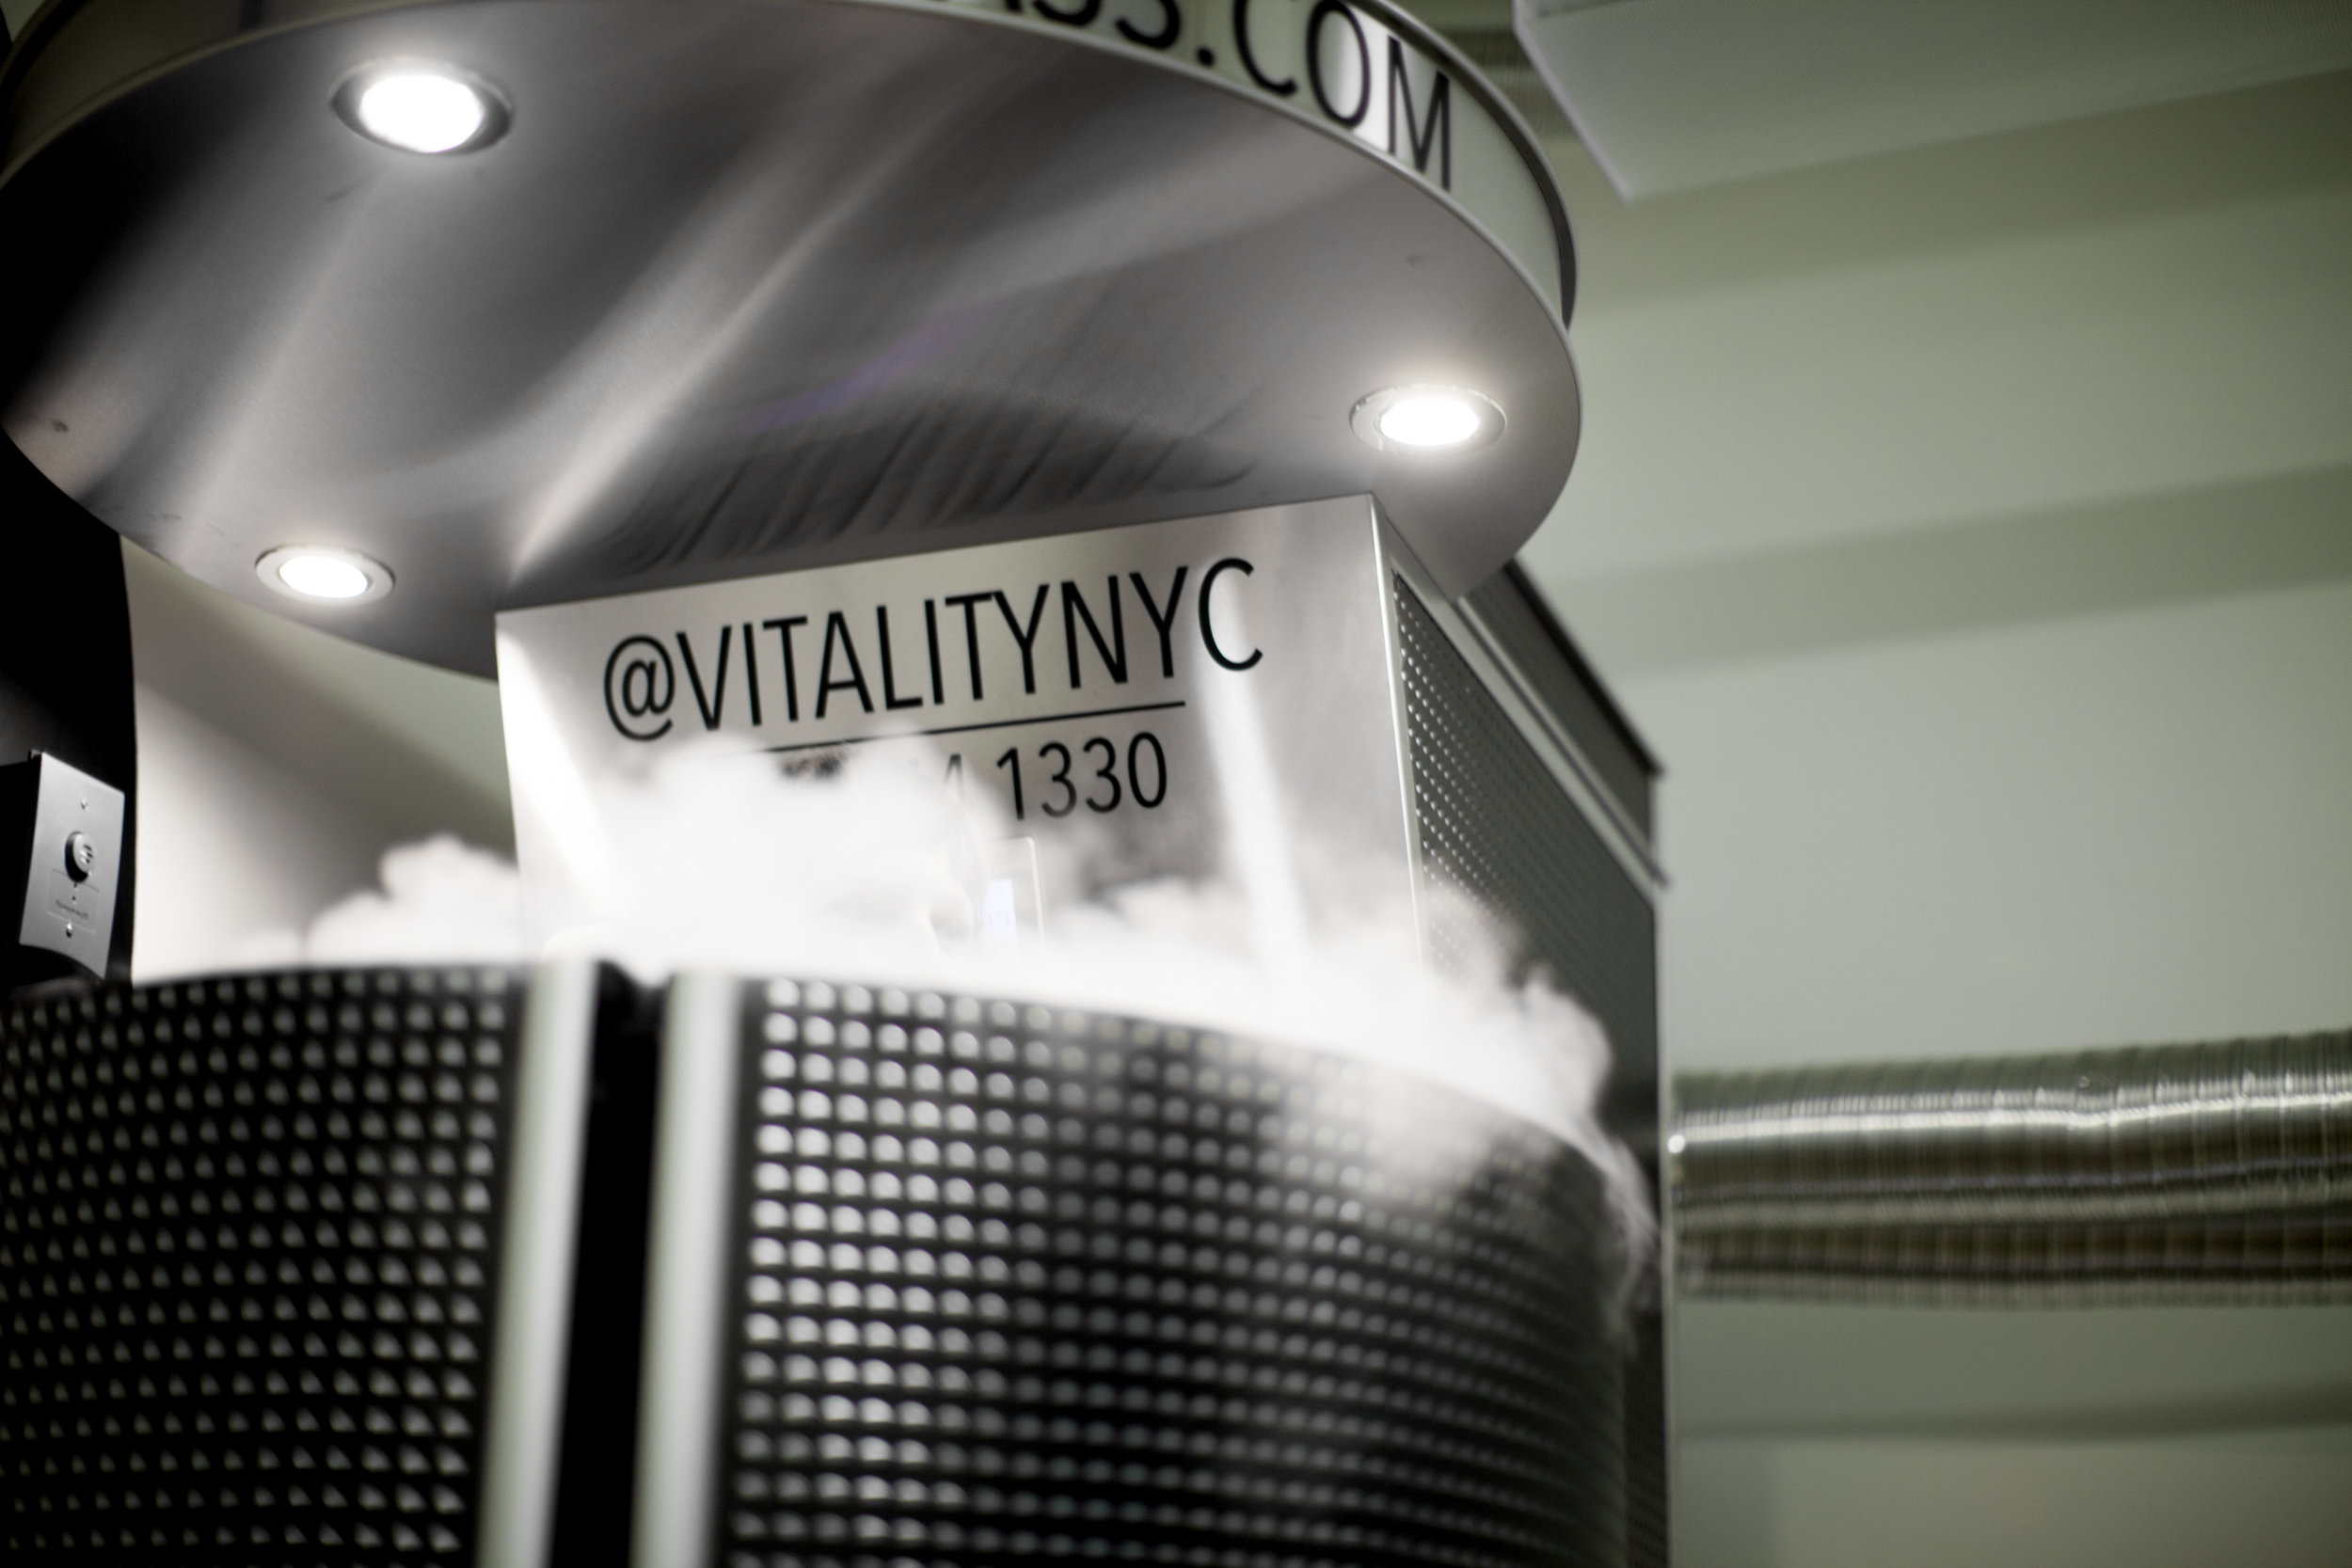 VITALITY NYC - Come experience New York's top Nutritional Detox and Rejuvenation studio. Located just steps from Penn Station and Herald Square, we offer Gravity Colonics, Cryotherapy and Nutritional Counseling.Gravity Colon Hydrotherapy uses the natural flow of gravity to introduce water into the body. Using the latest in water filtration technology, our custom-made treatment rooms use ultra-purified water to dissolve and carry wastes away. Our team is certified in the Woods Method of Gravity Colonics and is additionally trained in-house before joining our team. Sessions generally last 45 minutes to one hour. IT IS AMAZING AND YOU MUST TRY!